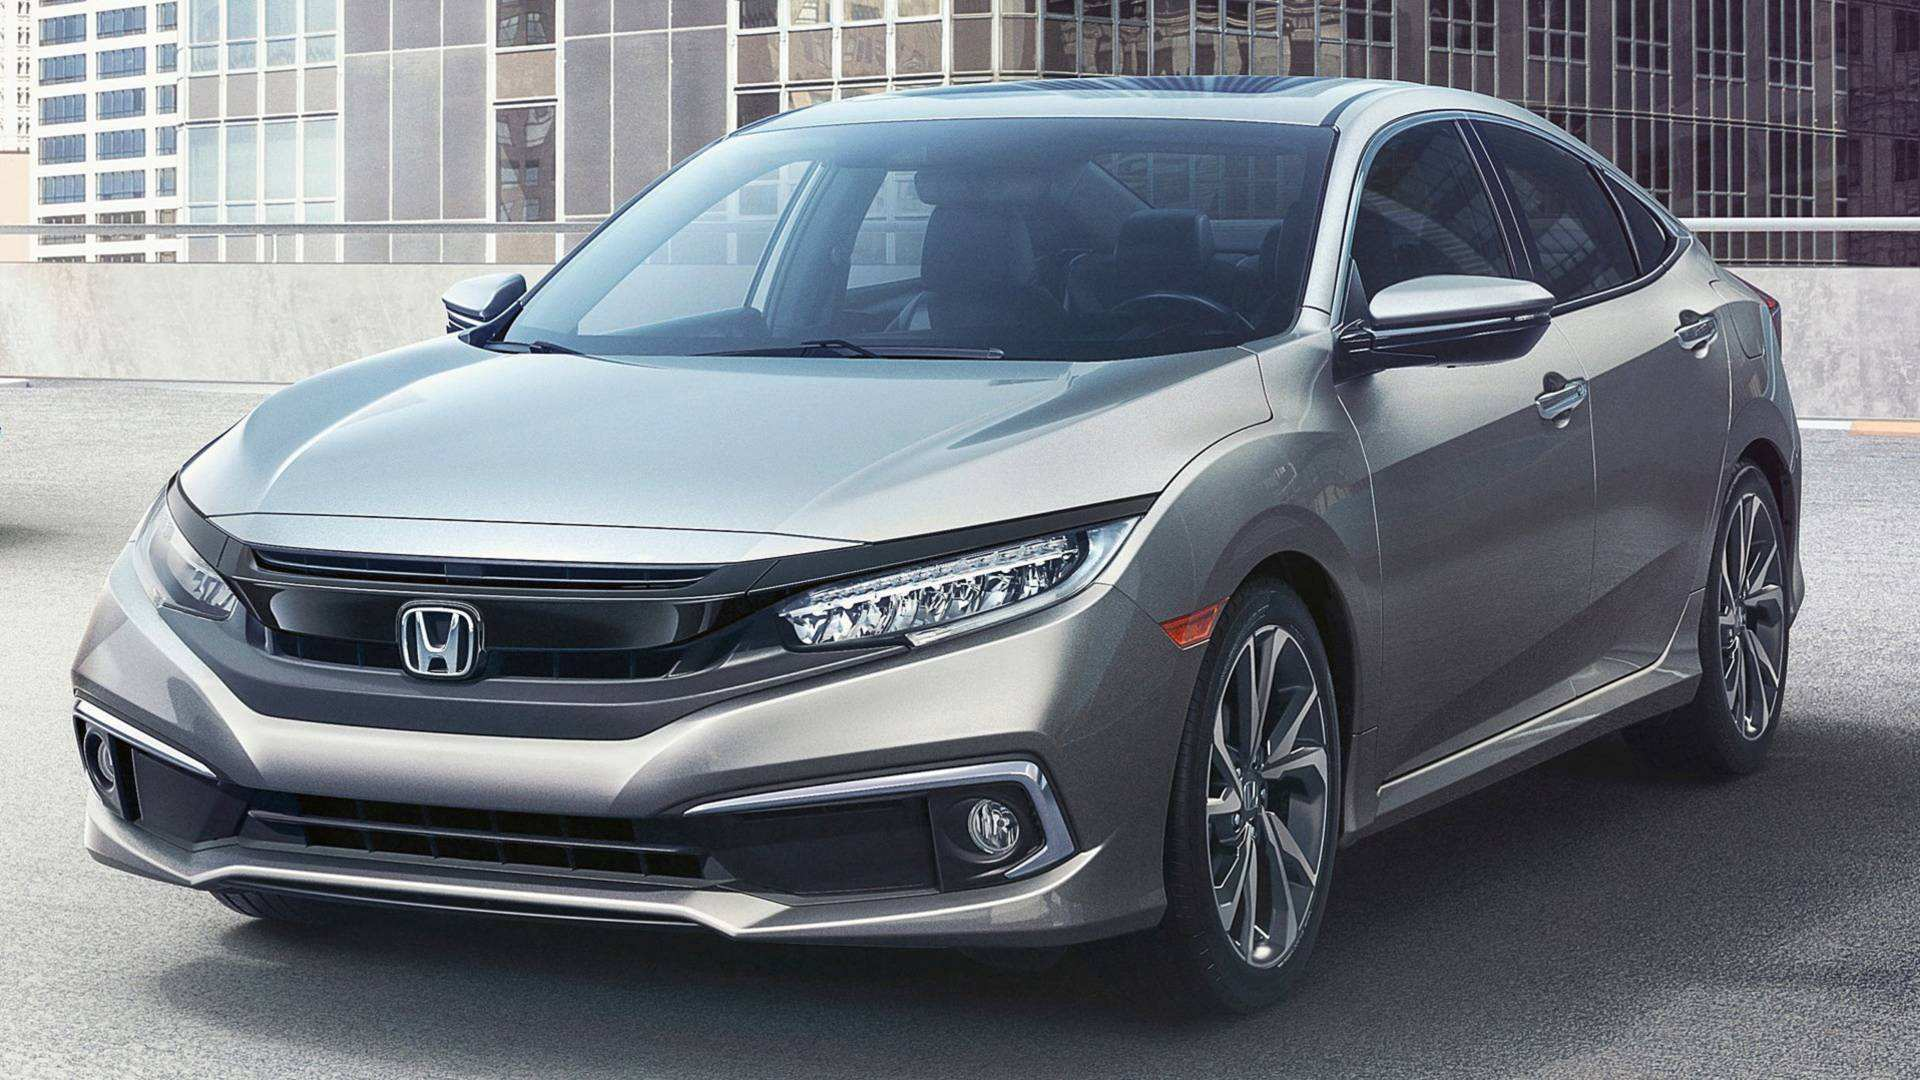 33 New 2019 Honda Civic Coupe Price